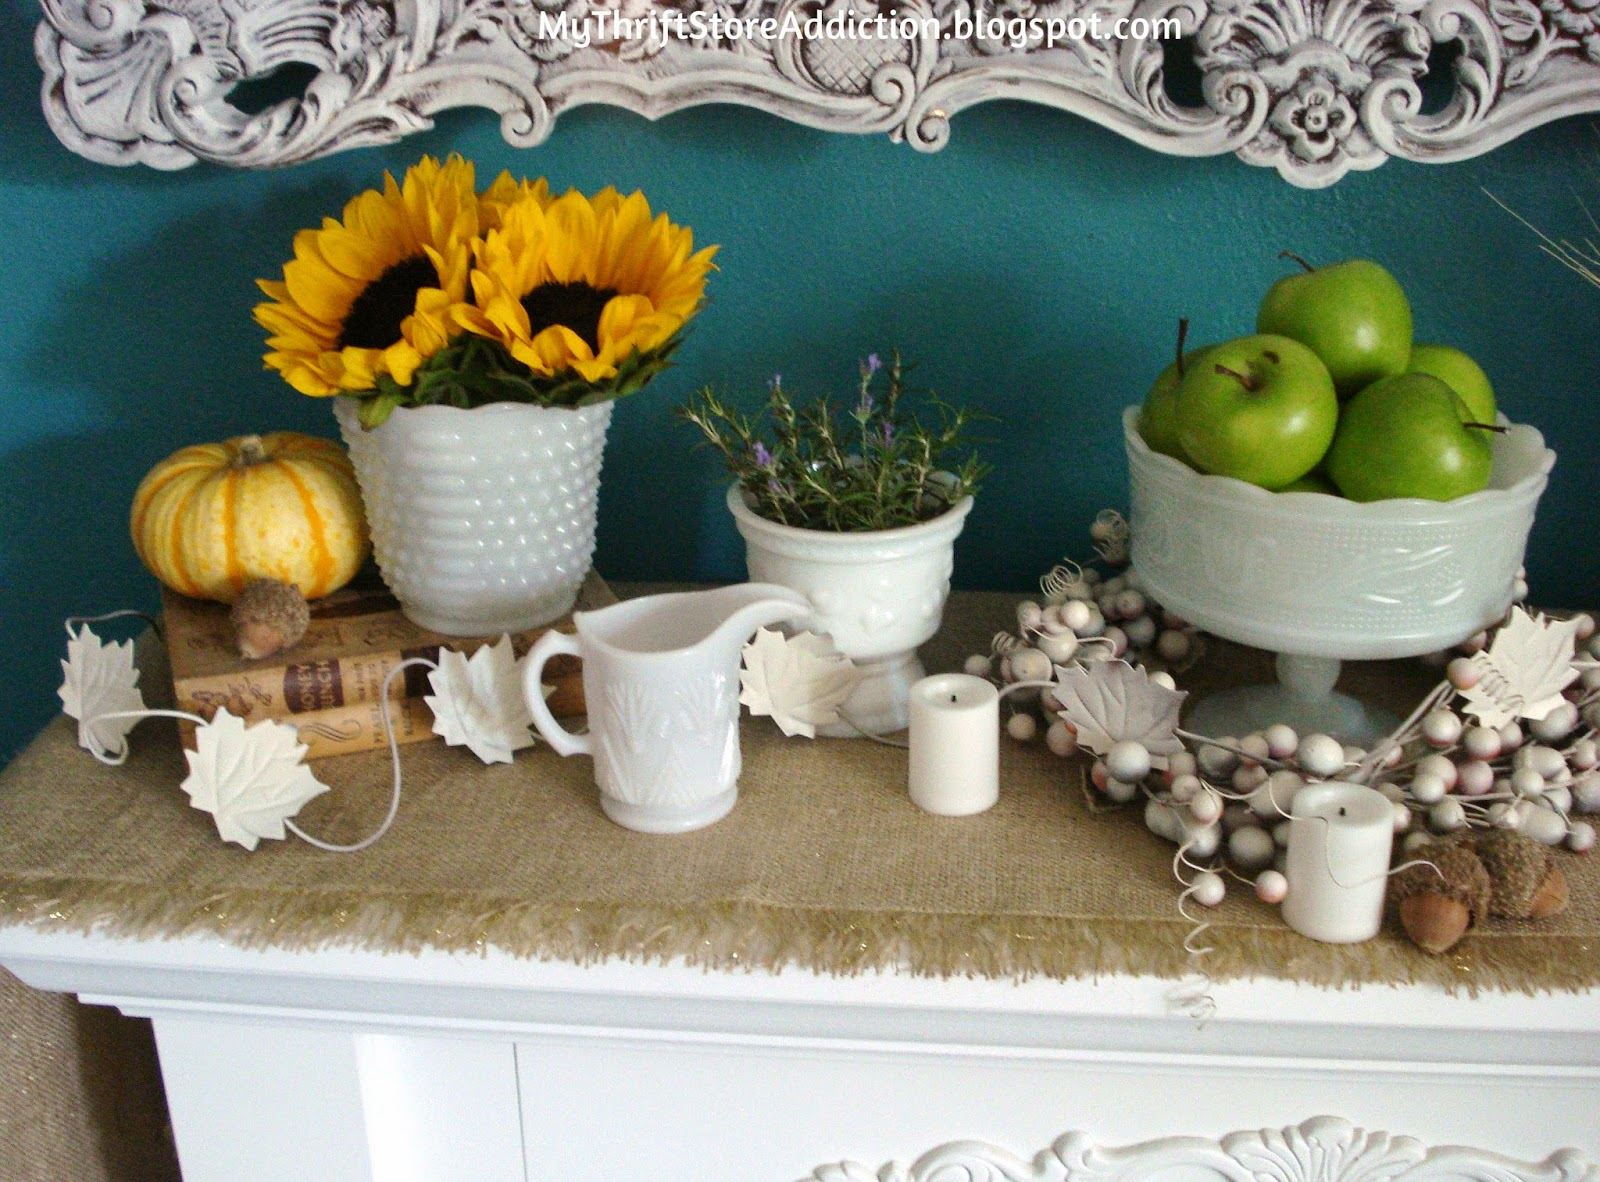 Autumn Harvest Botanical Mantel mythriftstoreaddiction.blogspot.com Use thrift store milk glass and items from your grocery store produce to create a beautiful fall mantel and save money